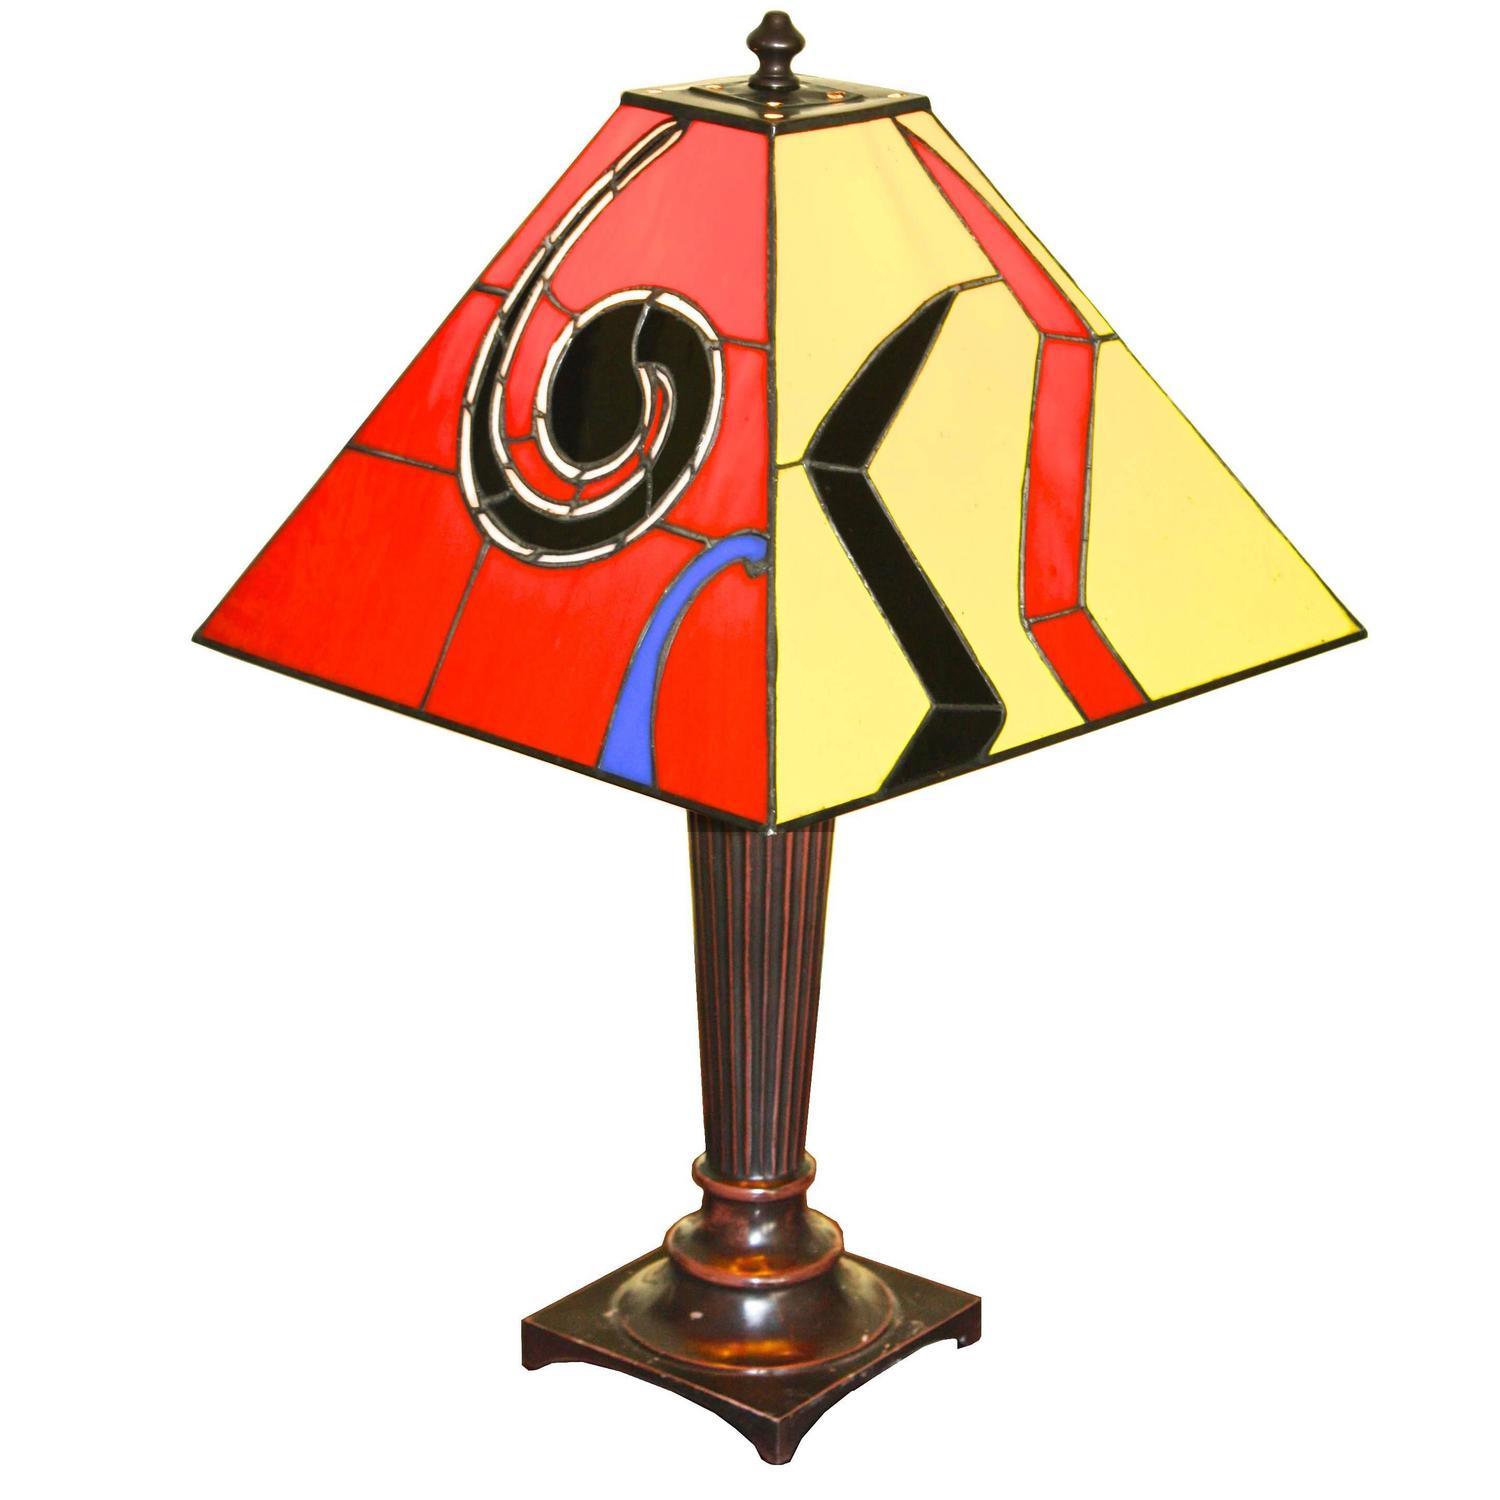 calder esque 39 sky swirl 39 stained glass lamp for sale at 1stdibs. Black Bedroom Furniture Sets. Home Design Ideas